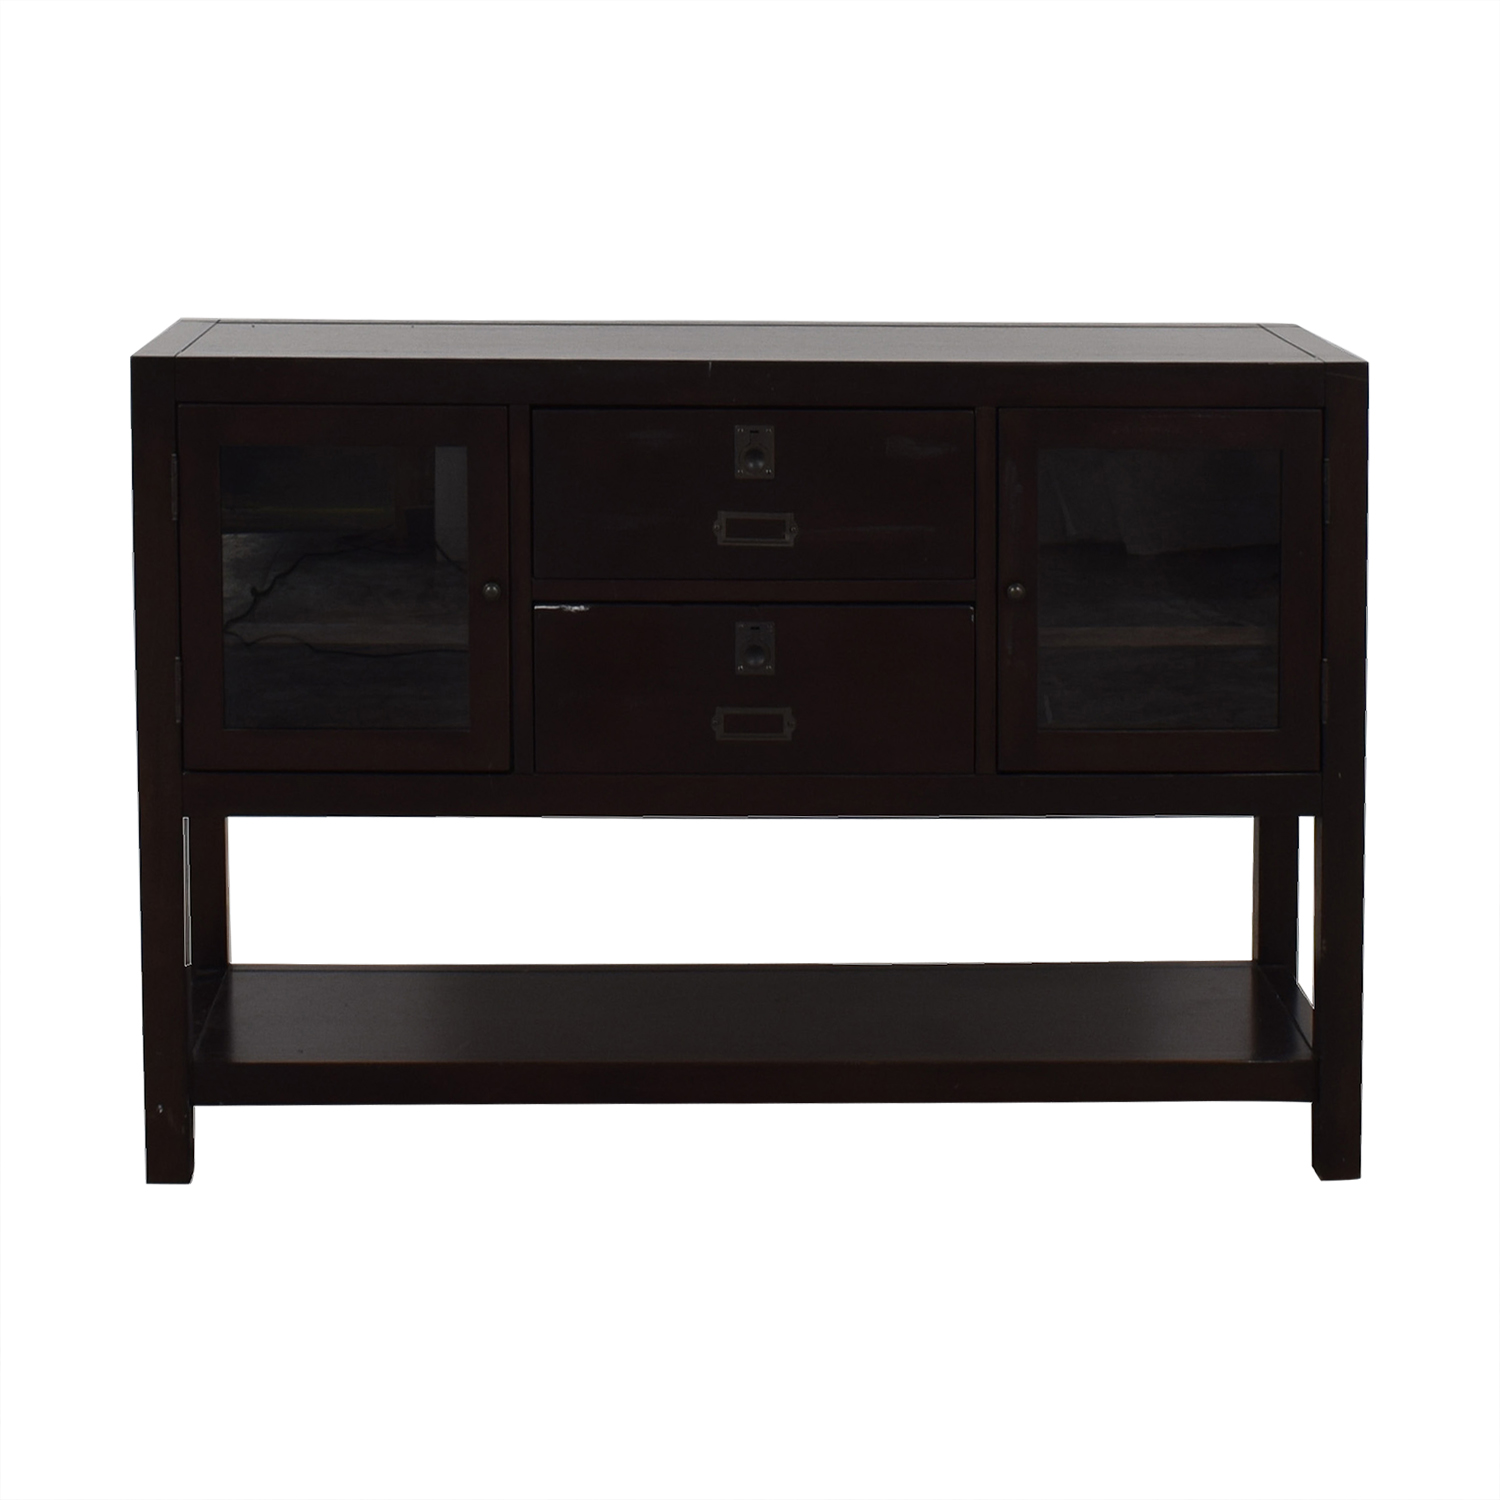 Restoration Hardware Restoration Hardware Dark Wood Buffet Storage